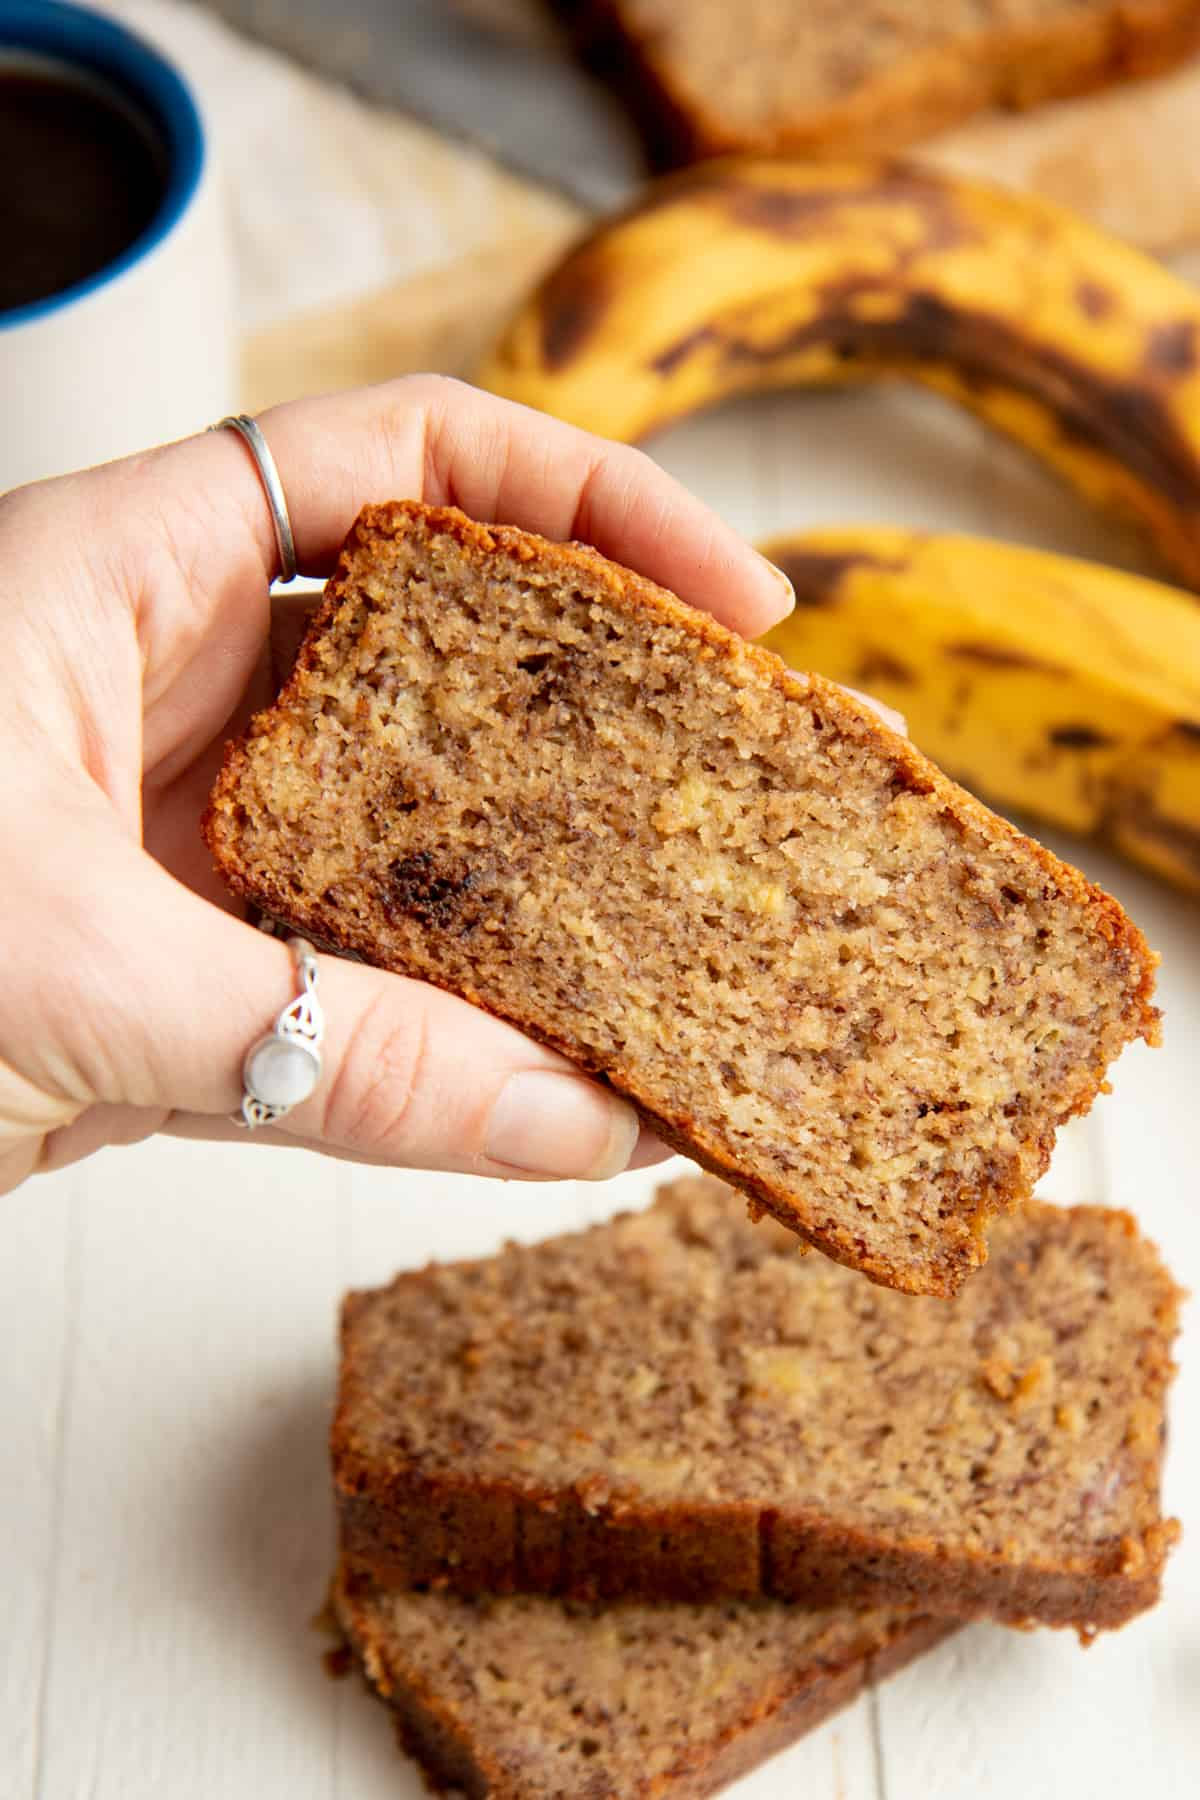 A woman's hand holds a slice of paleo banana bread over a stack of other slices.